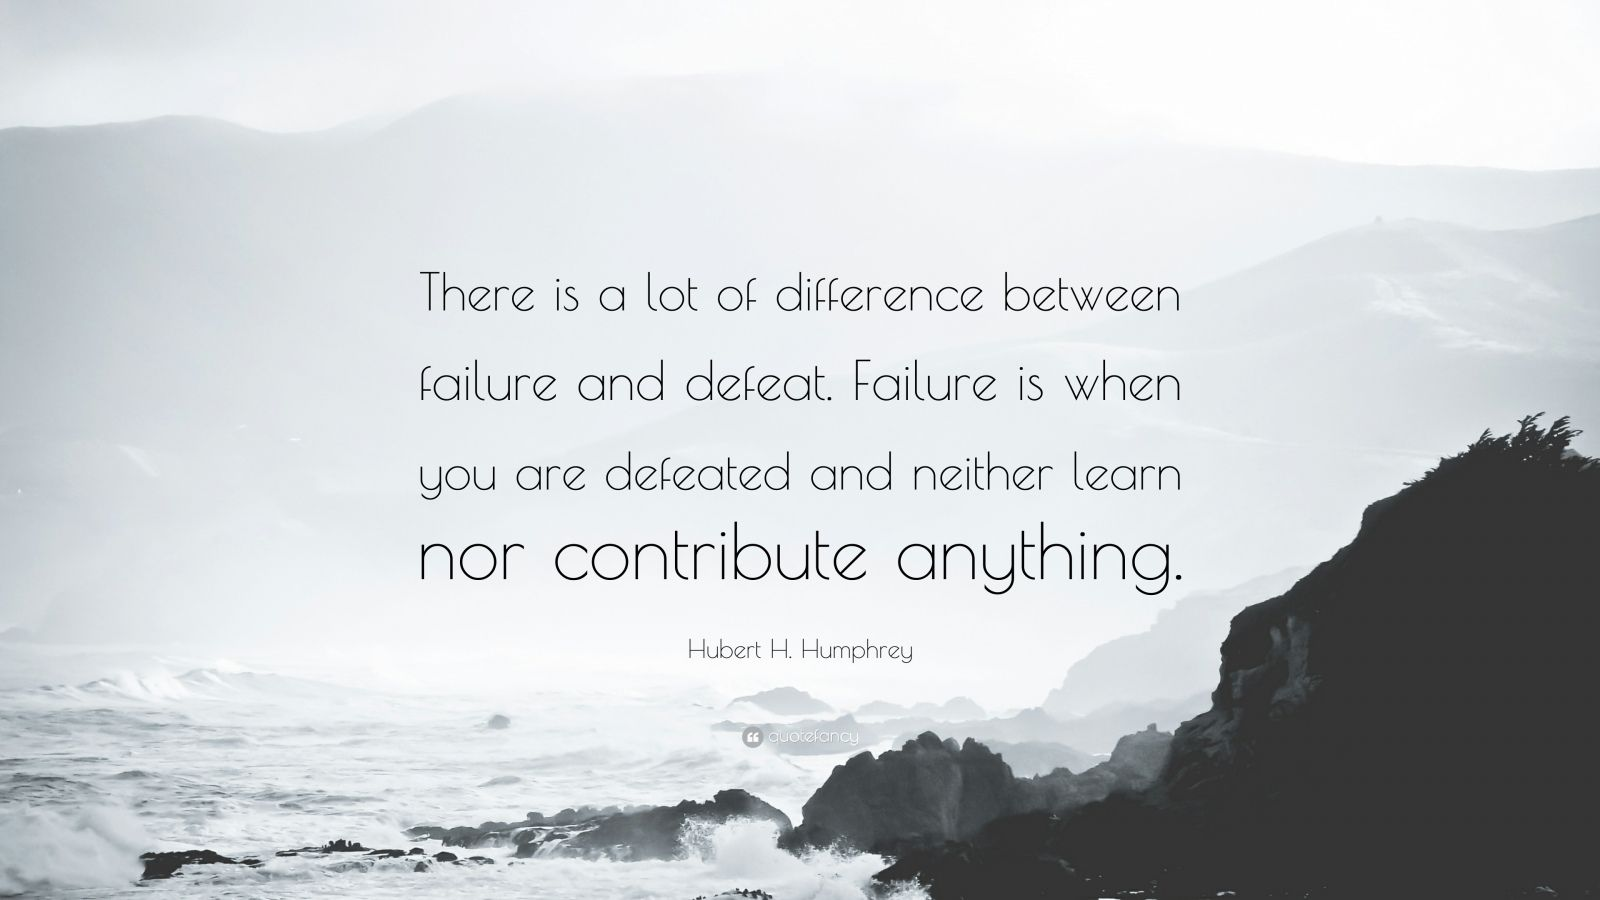 """Hubert H. Humphrey Quote: """"There is a lot of difference between failure and defeat. Failure is when you are defeated and neither learn nor contribute anything."""""""